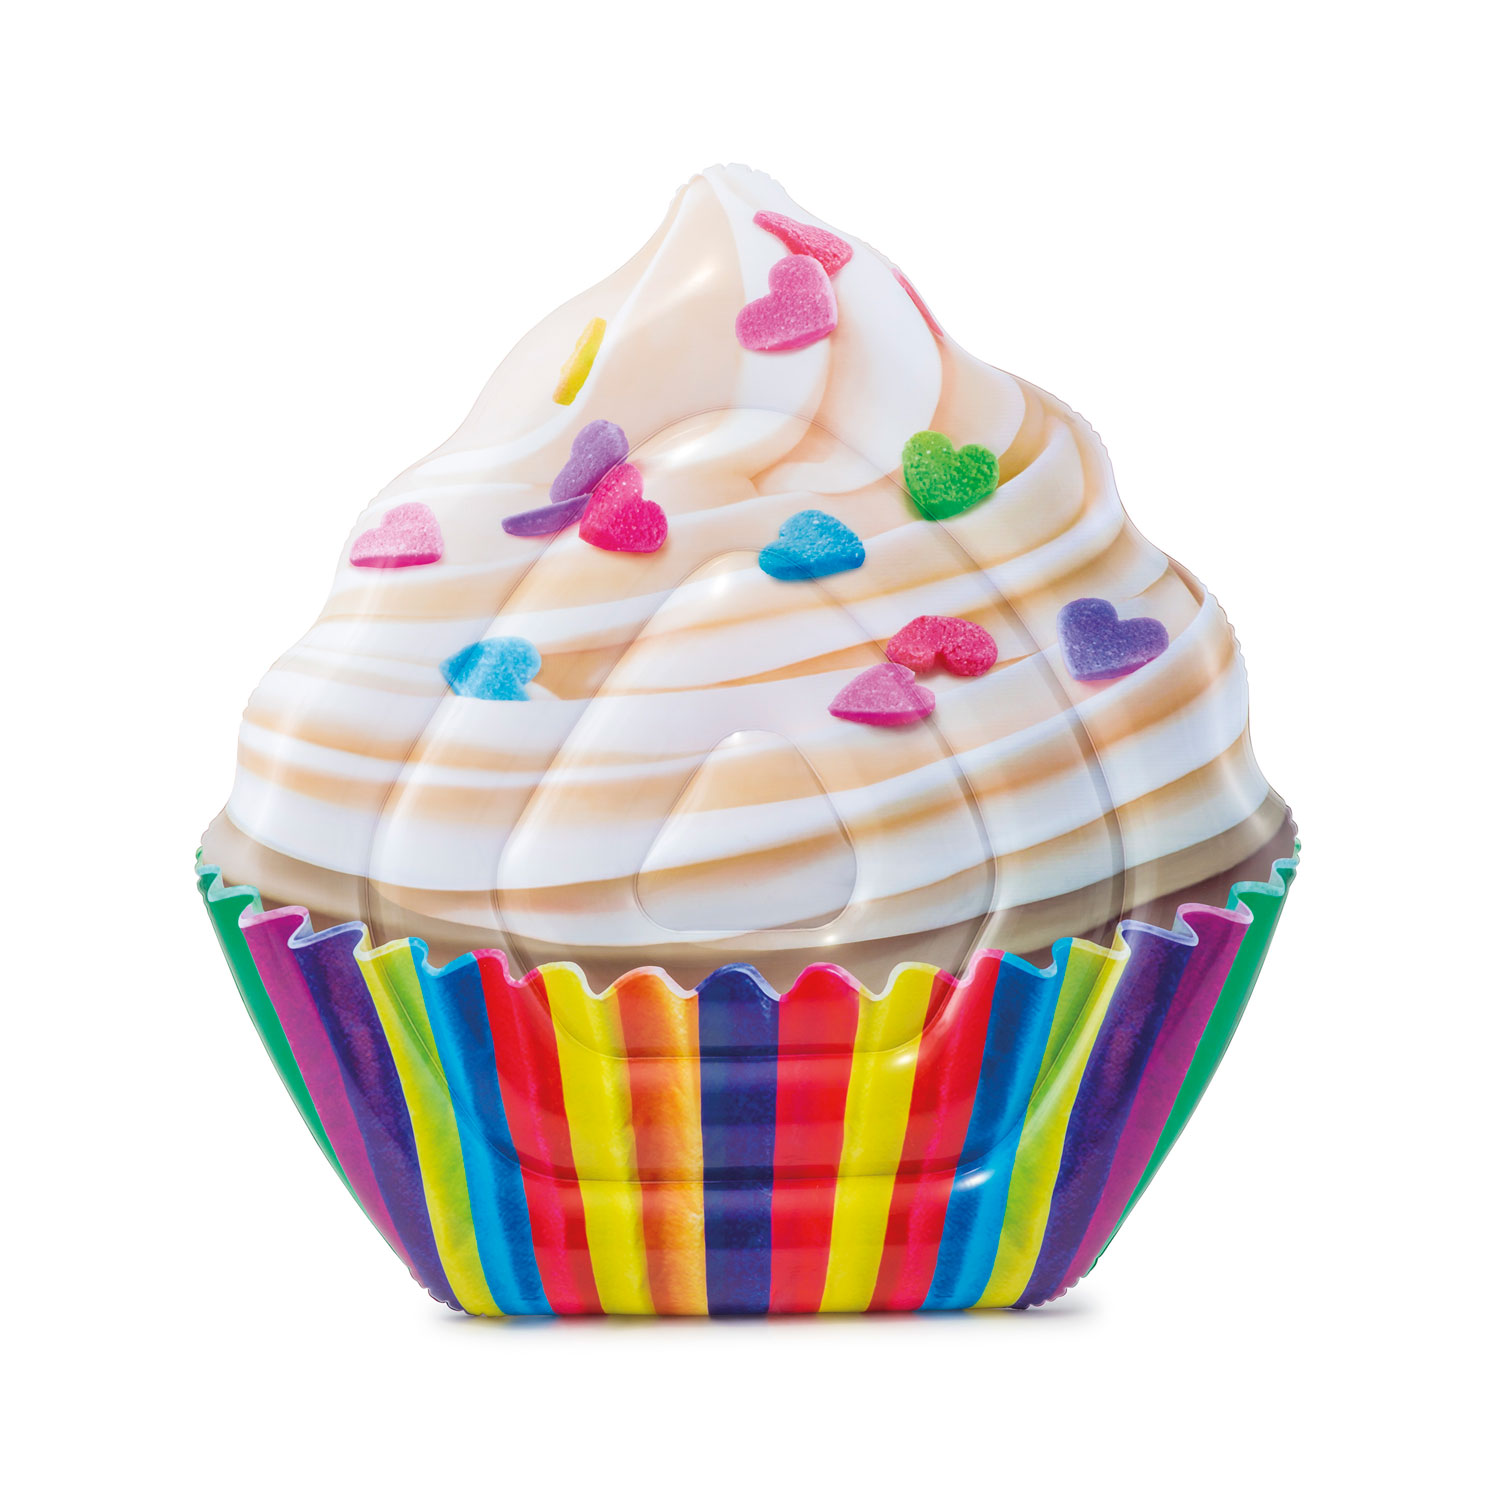 Intex Luchtbed Cupcake